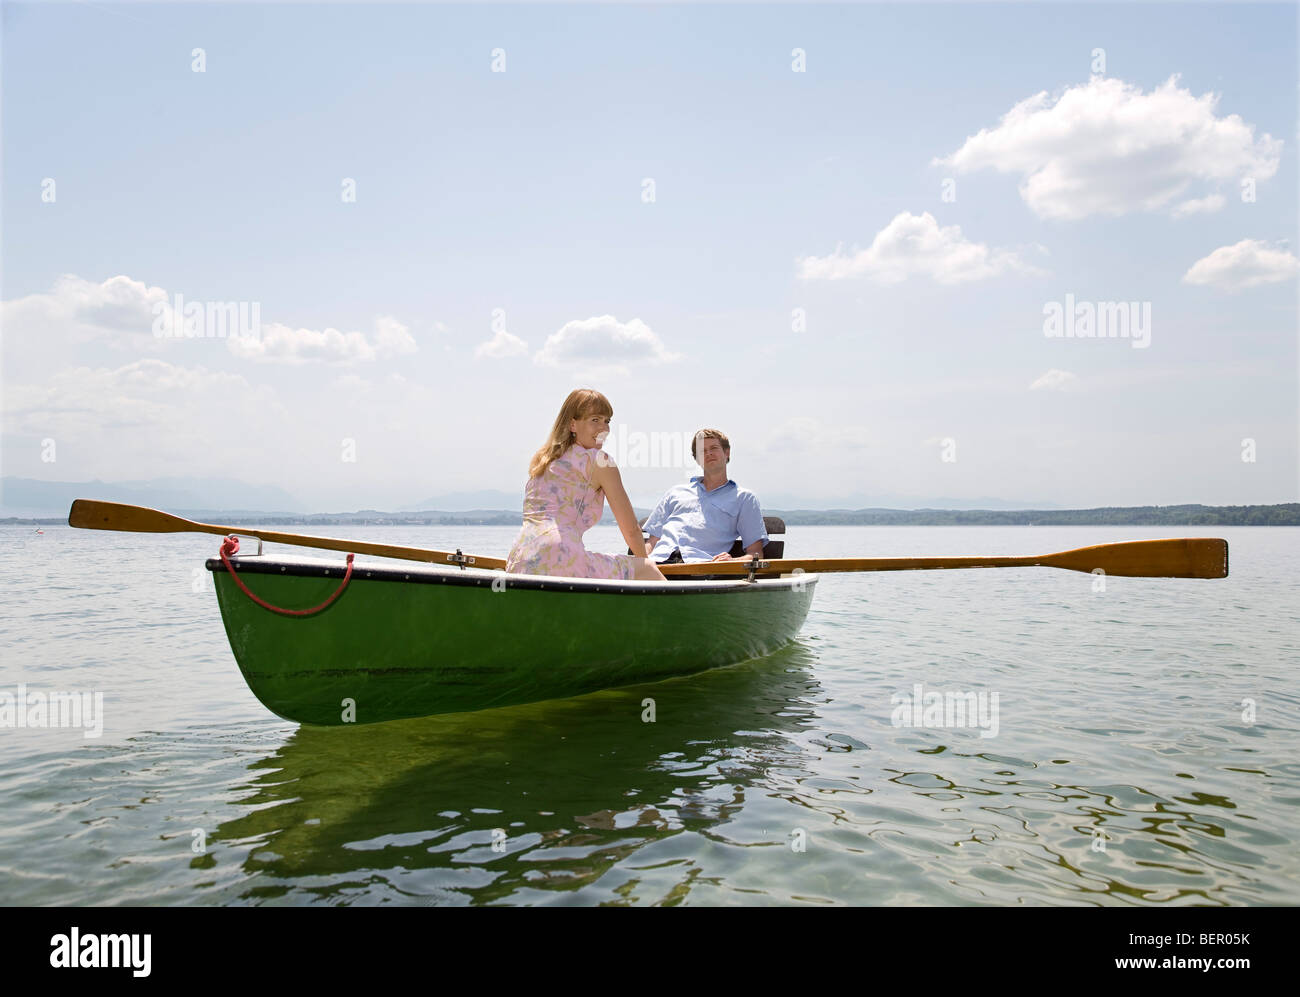 woman and man rowing boat on lake - Stock Image